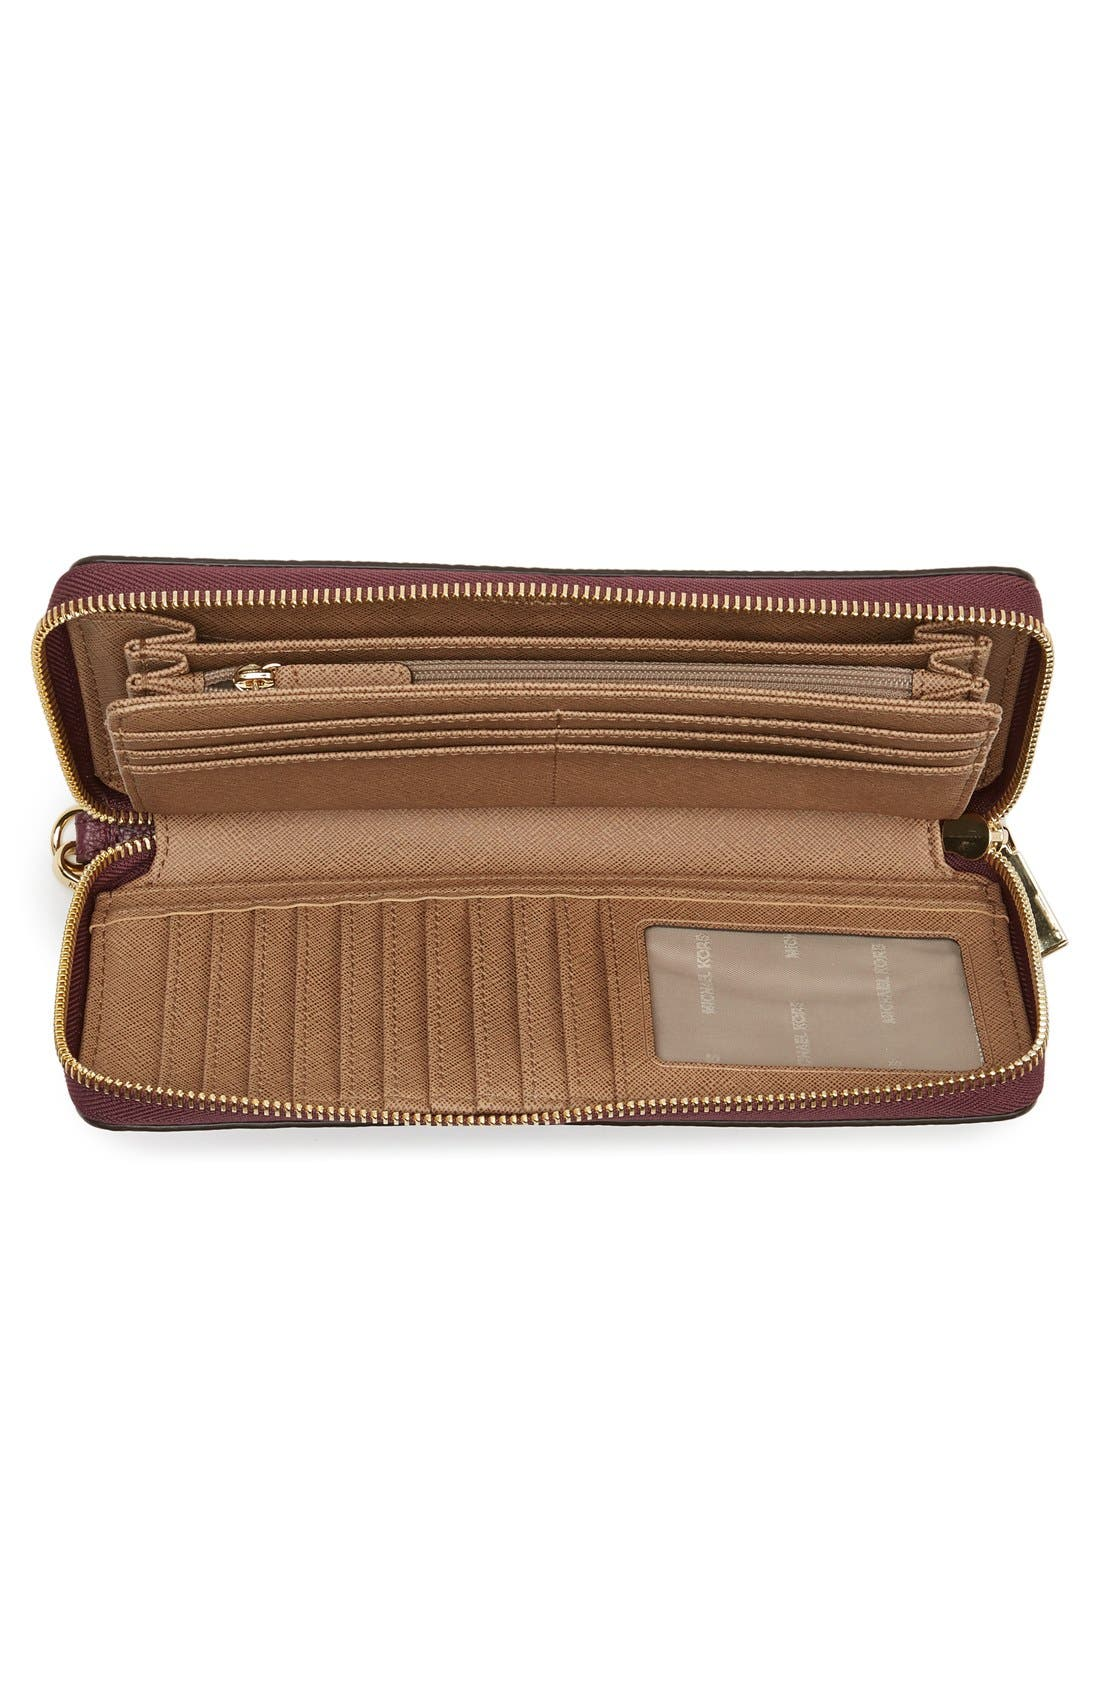 'Mercer' Leather Continental Wallet,                             Alternate thumbnail 15, color,